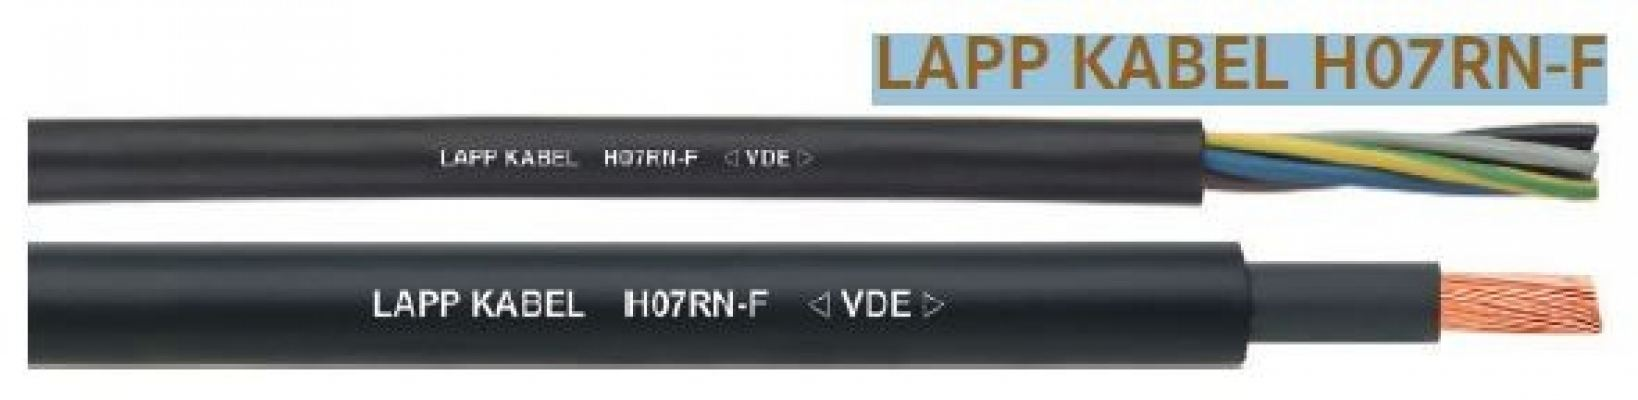 LAPP KABEL Harsh Conditions Rubber Cable  H07RN-F